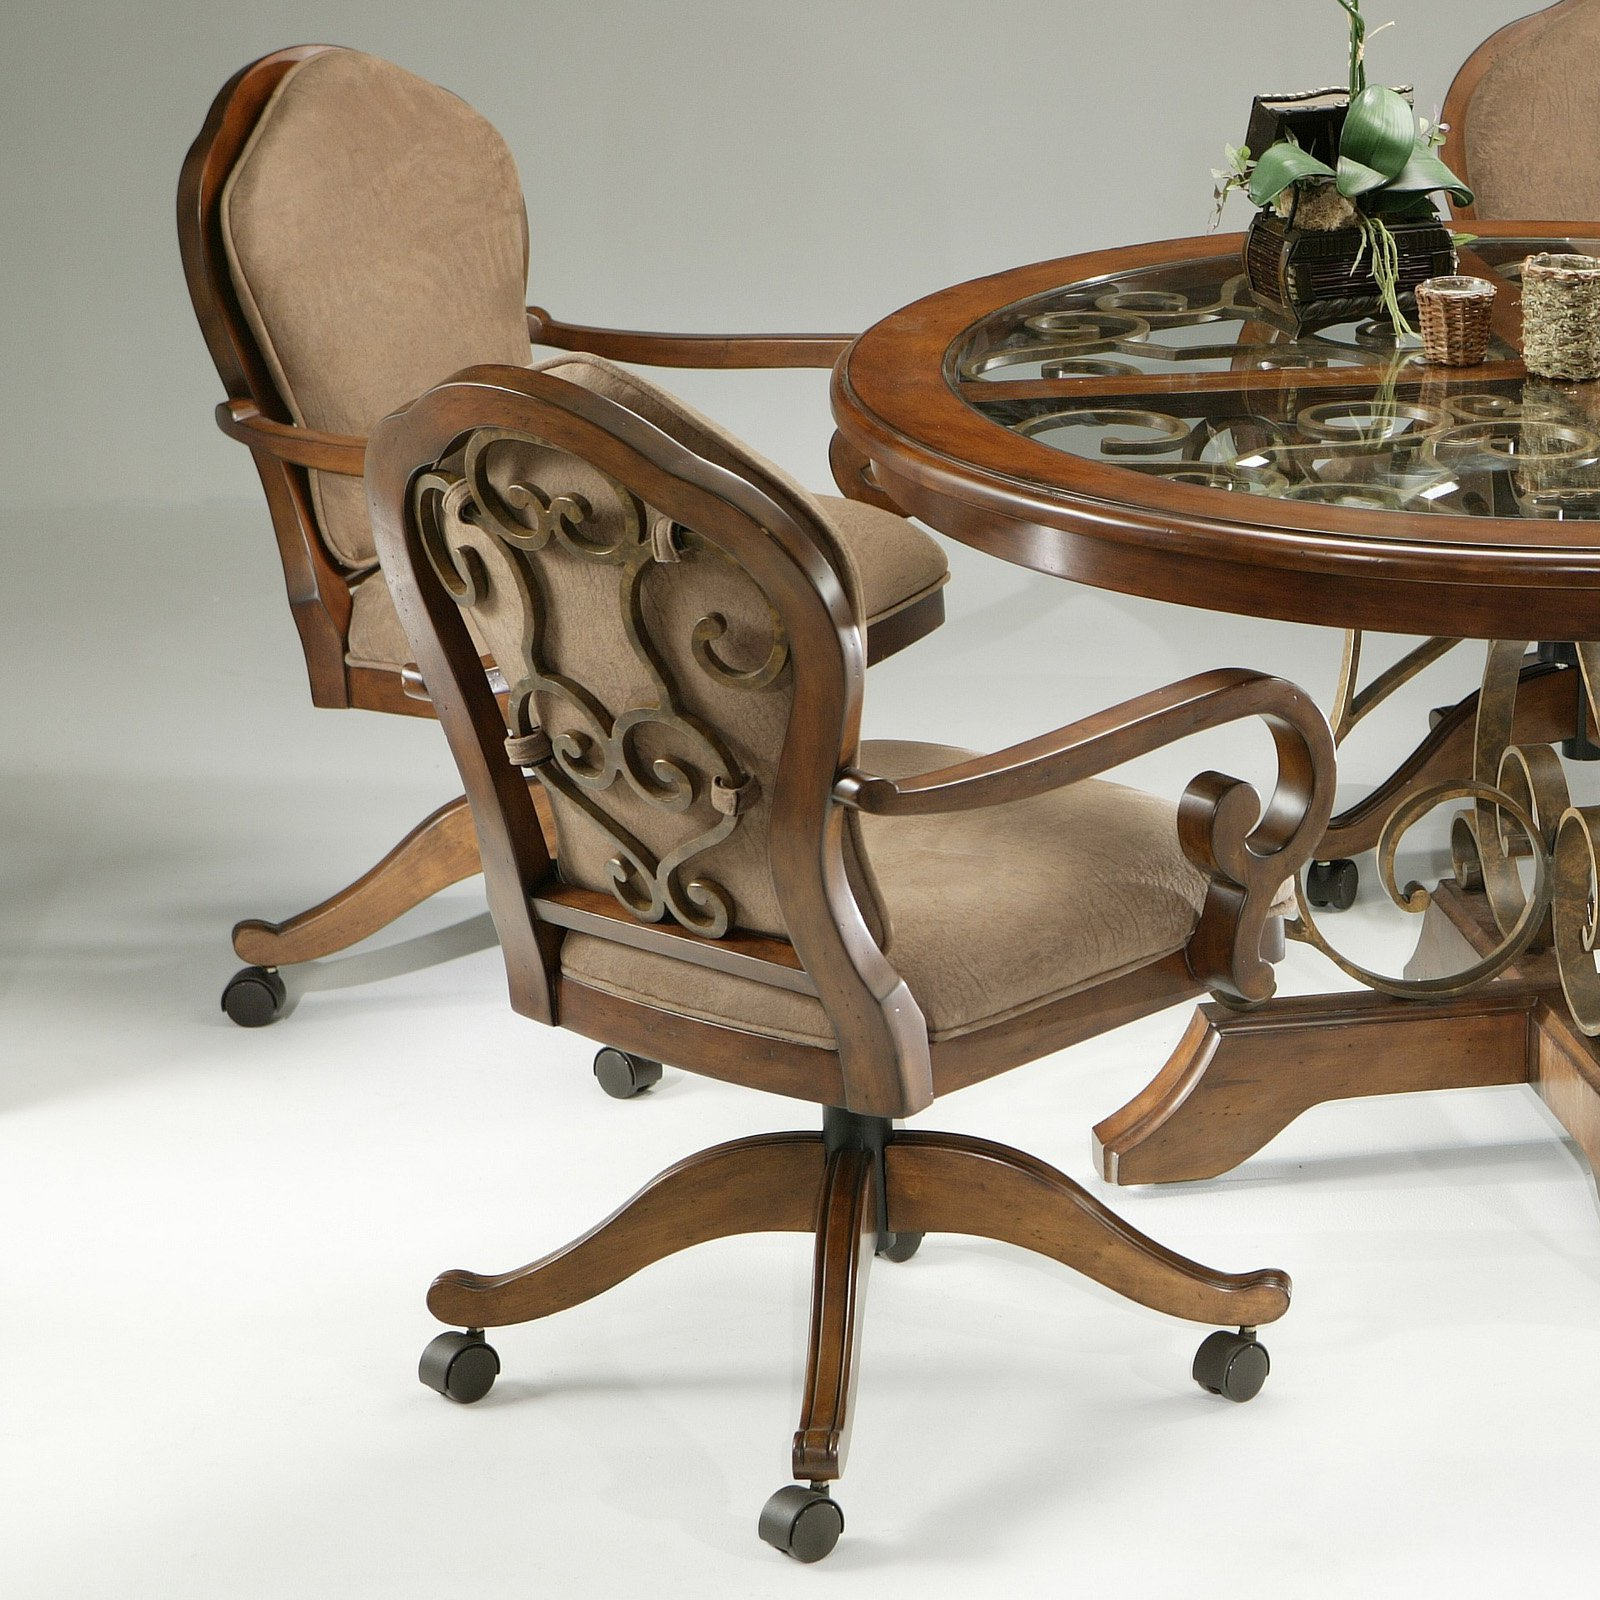 Image of: Classic Dining Room Chairs With Casters